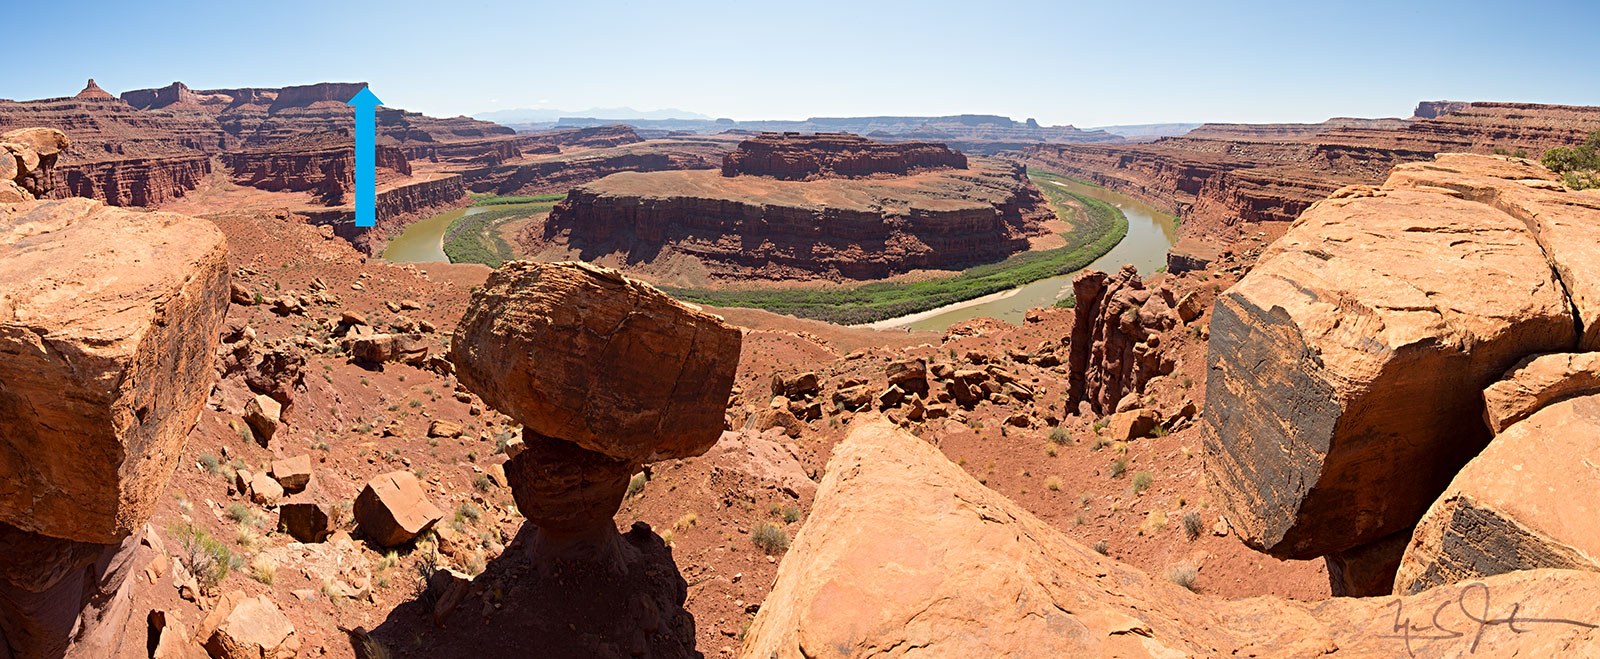 From the northwest side of the Gooseneck, down on the White Rim Trail.  The point of view of the image above is indicated by the blue arrow.